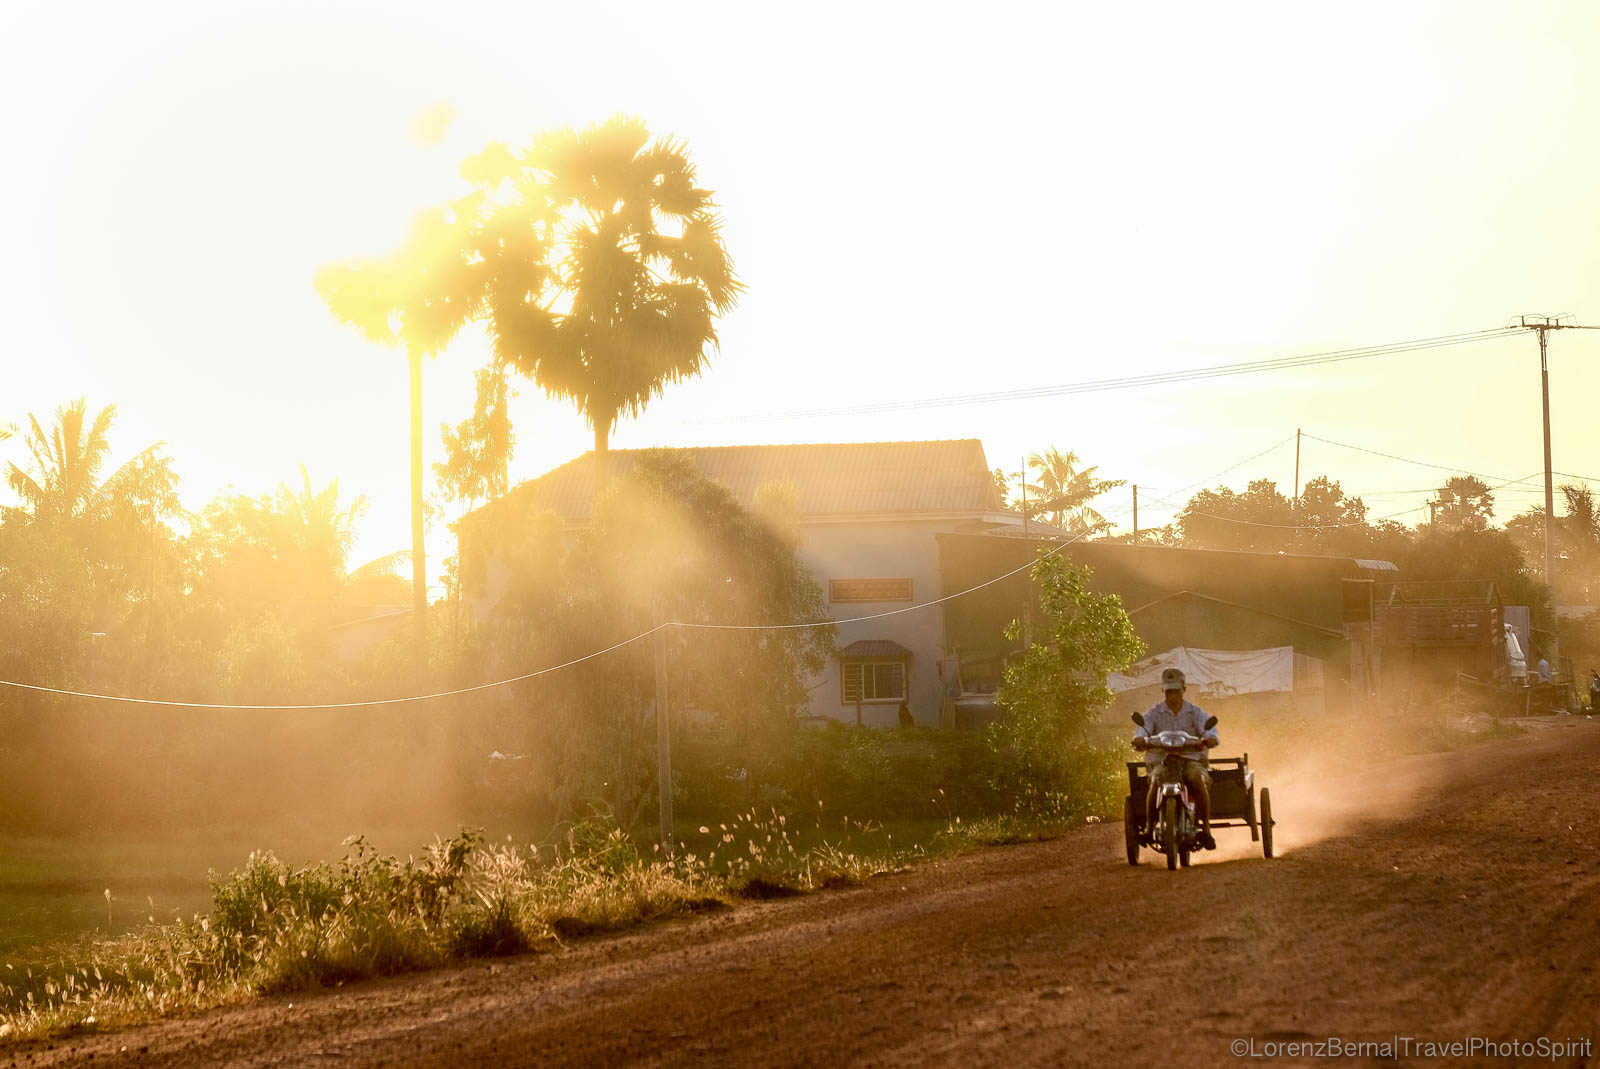 Motocar in the backlight in Kampot countryside, Cambodia